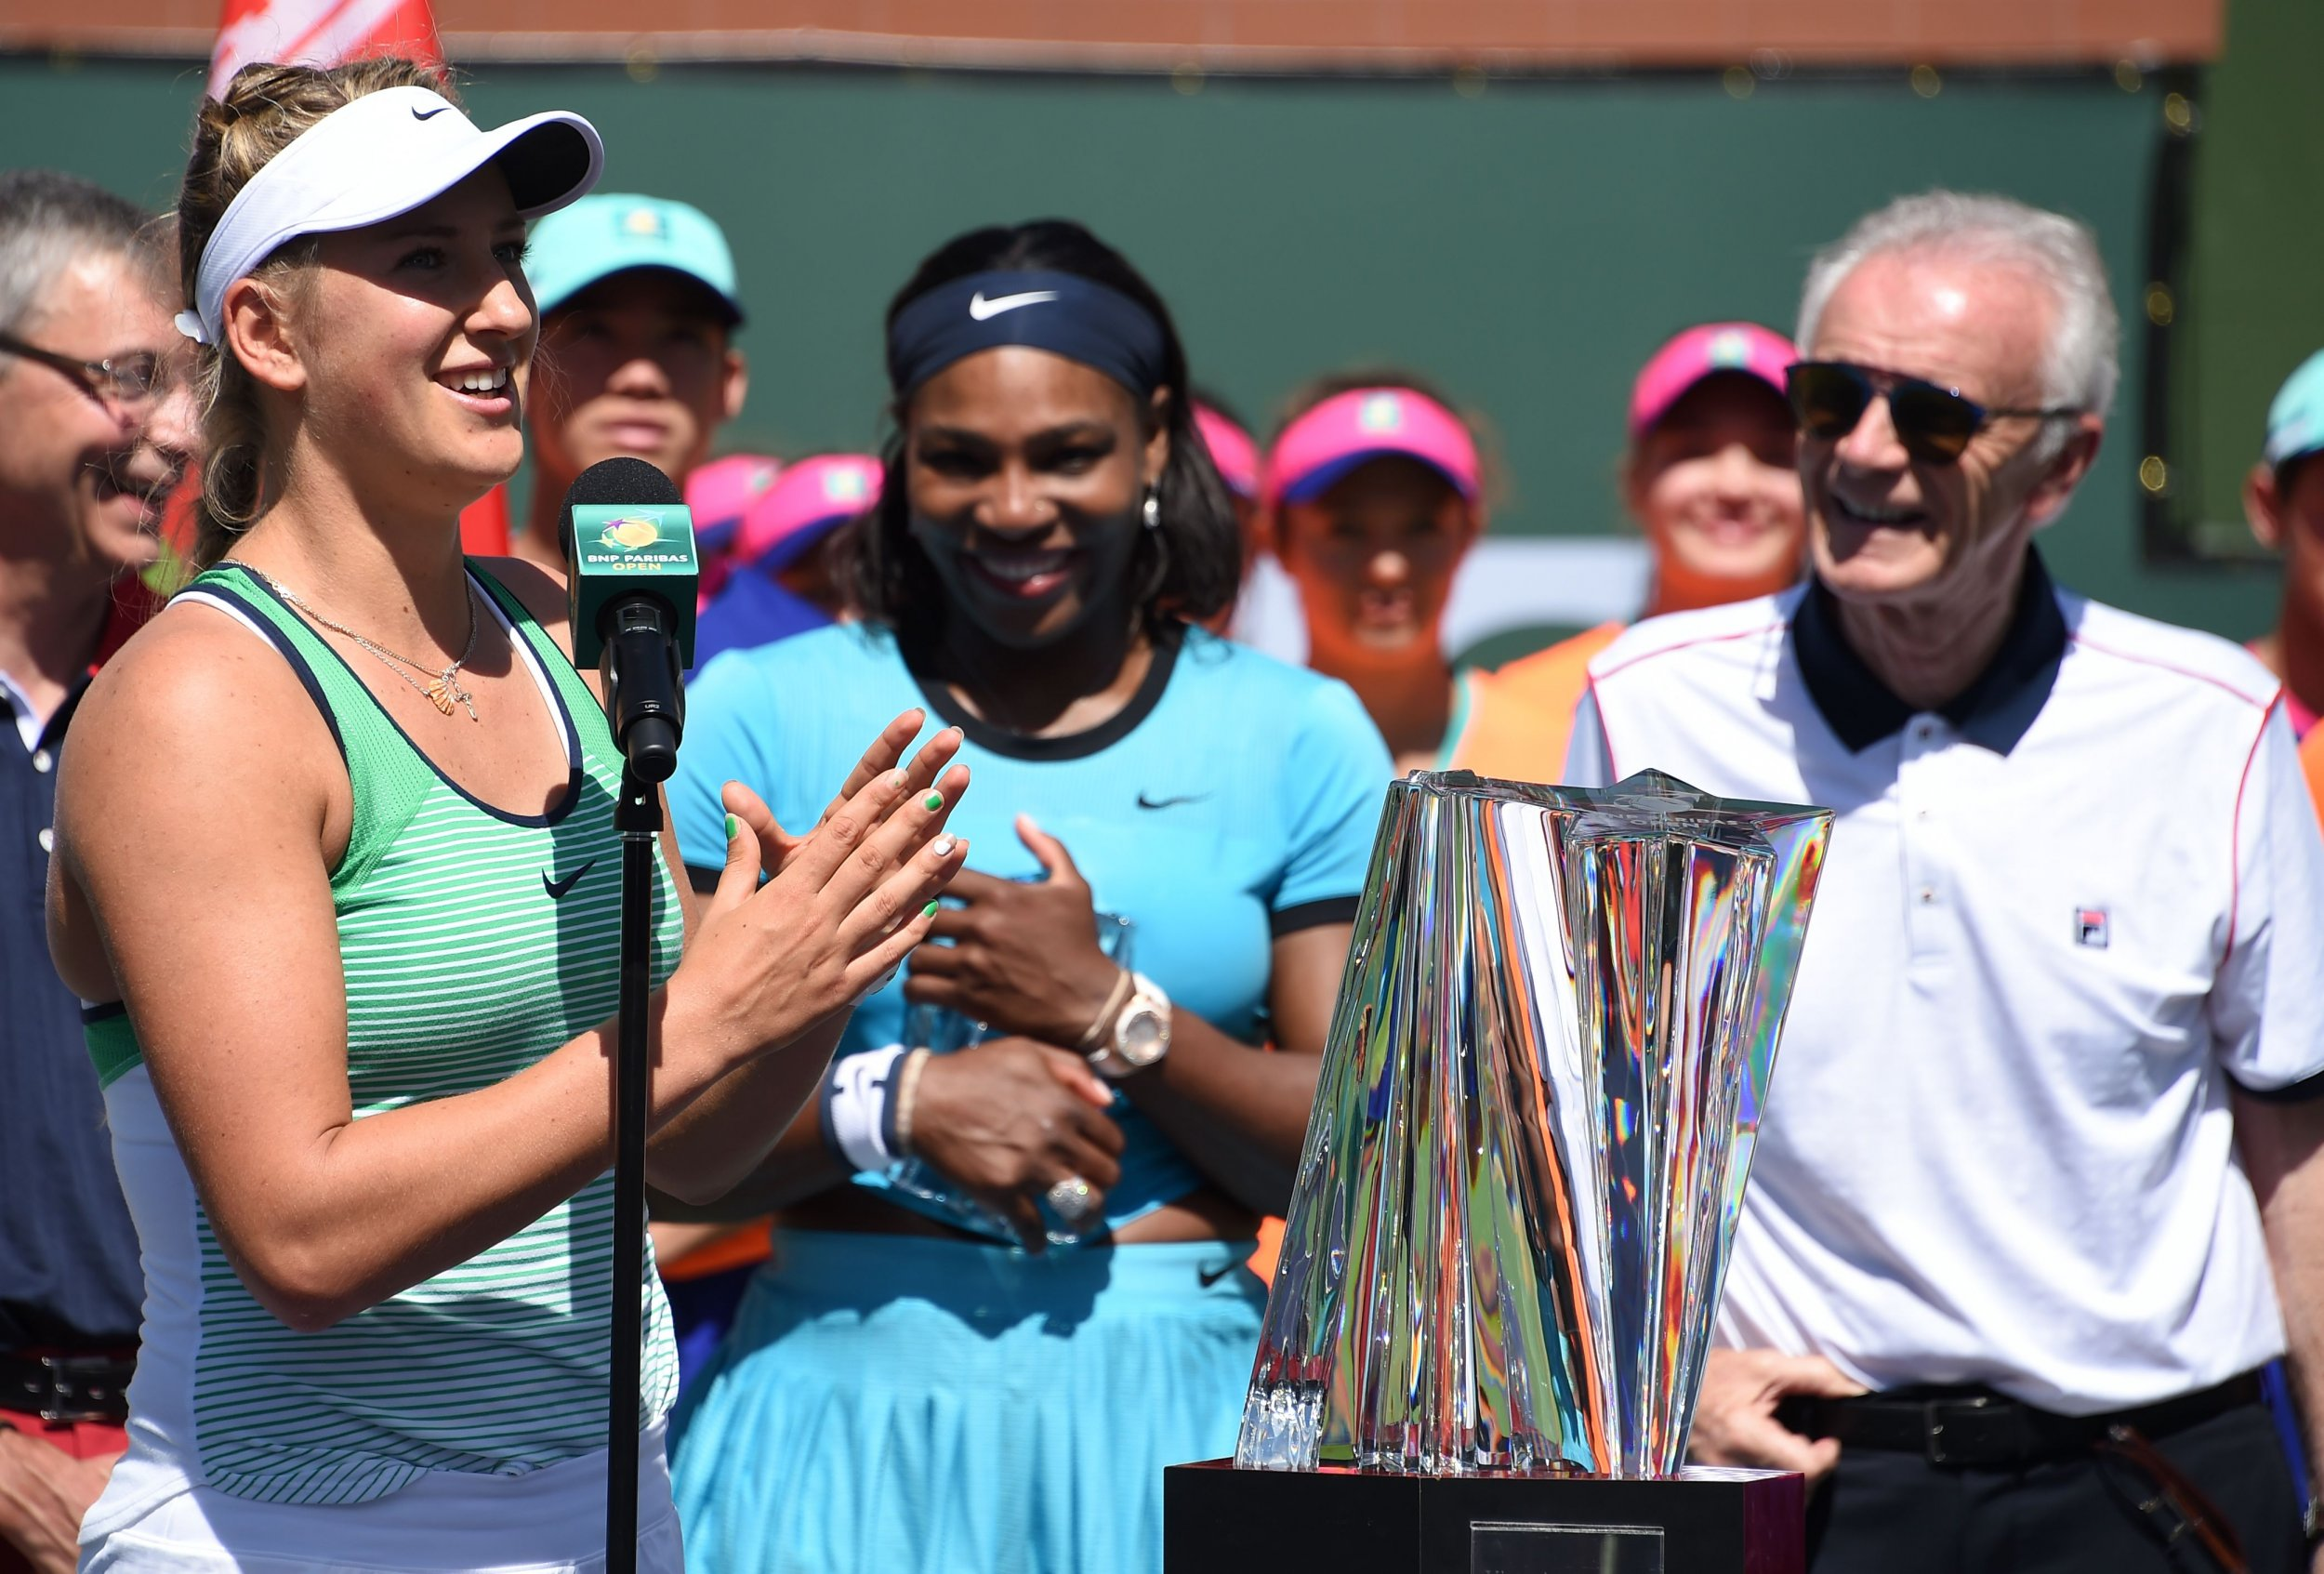 Raymond Moore, right, with Serena Williams and Indian Wells winner Victoria Azarenka, March 20, 2016.